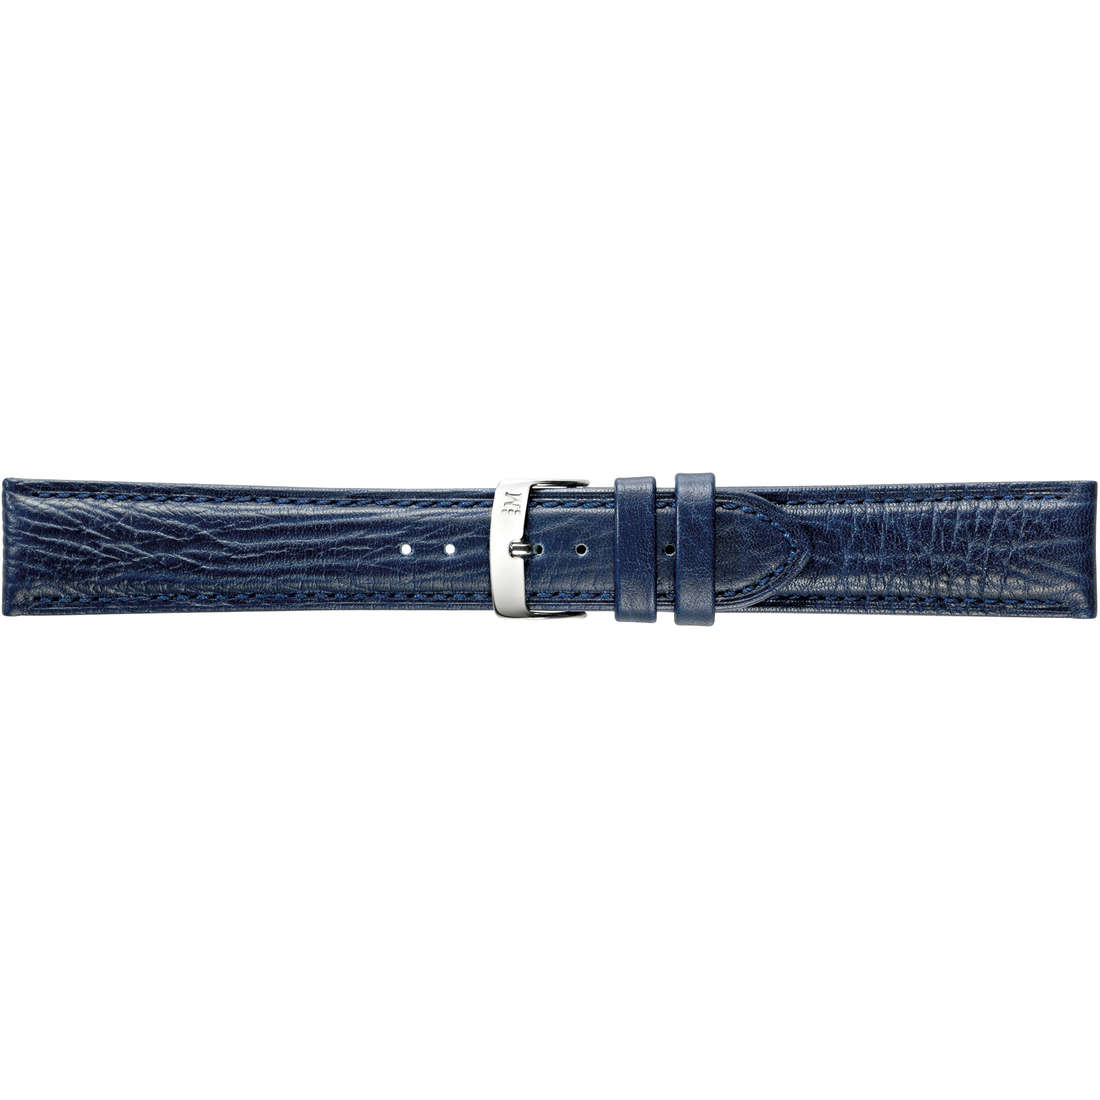 watch watch bands watch straps man Morellato Linea Sport A01X4335713062CR22